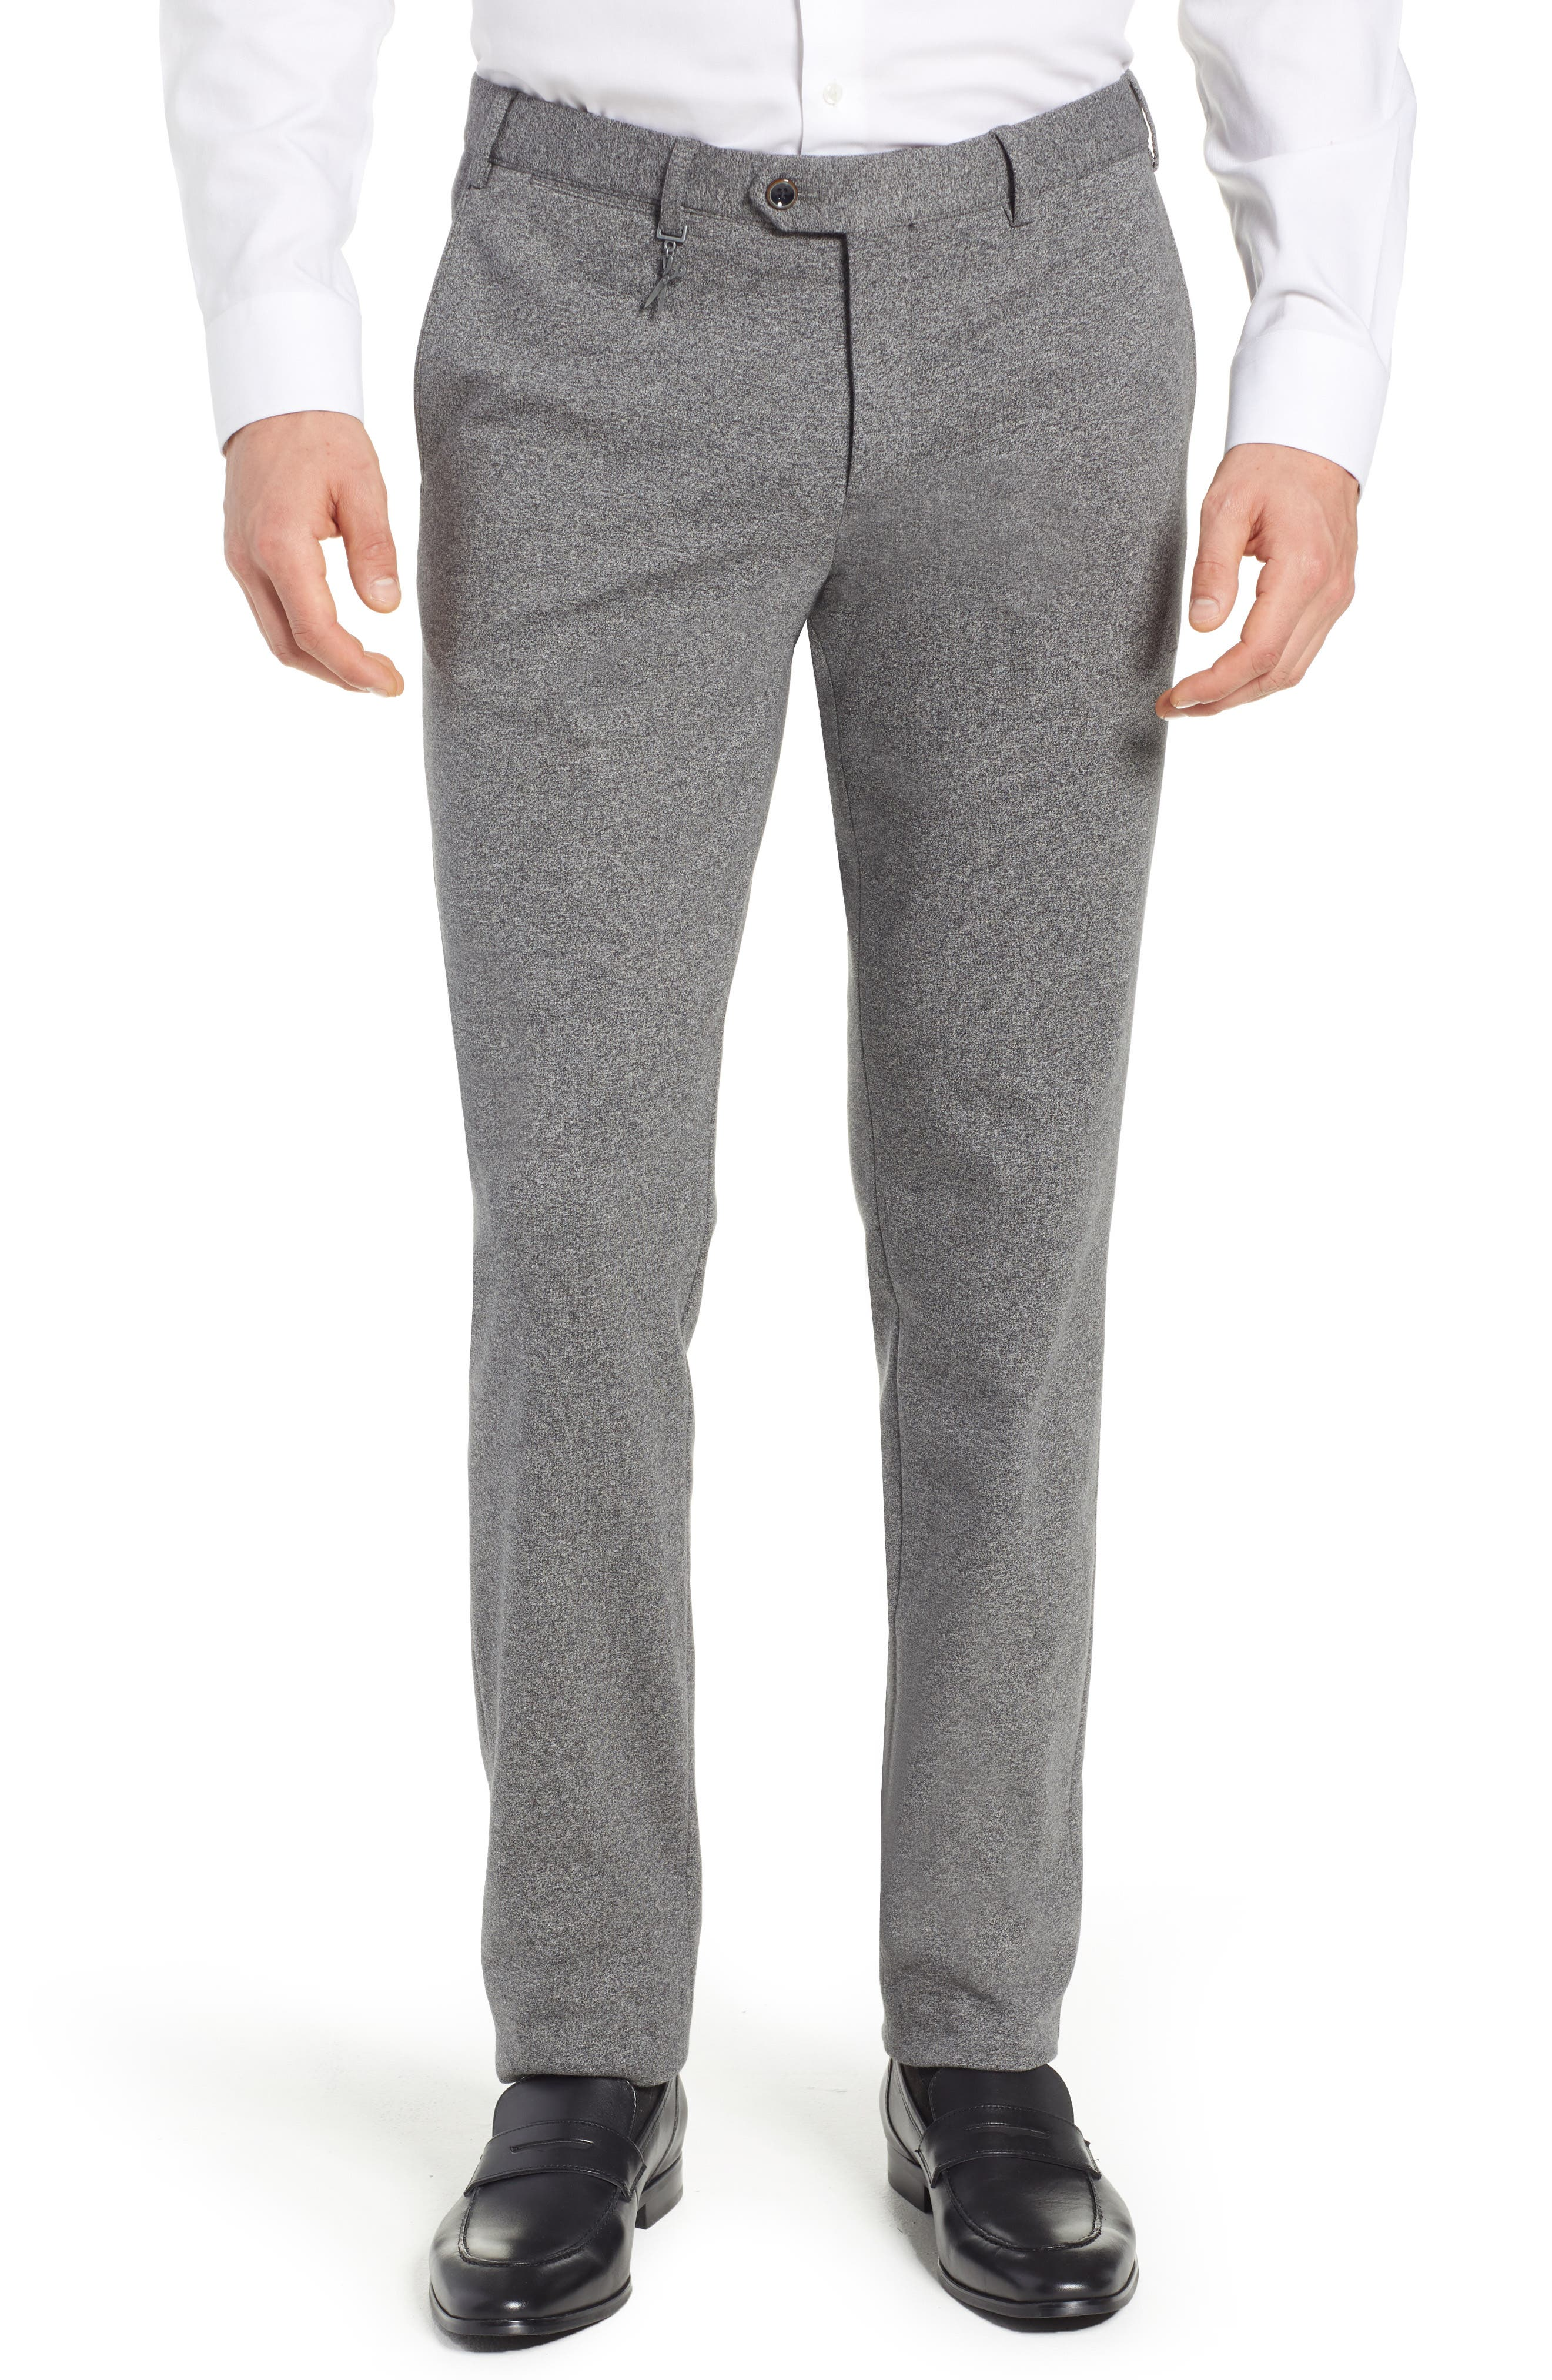 Tero Trim Fit Flat Front Solid Cotton Trousers,                             Main thumbnail 1, color,                             GREY